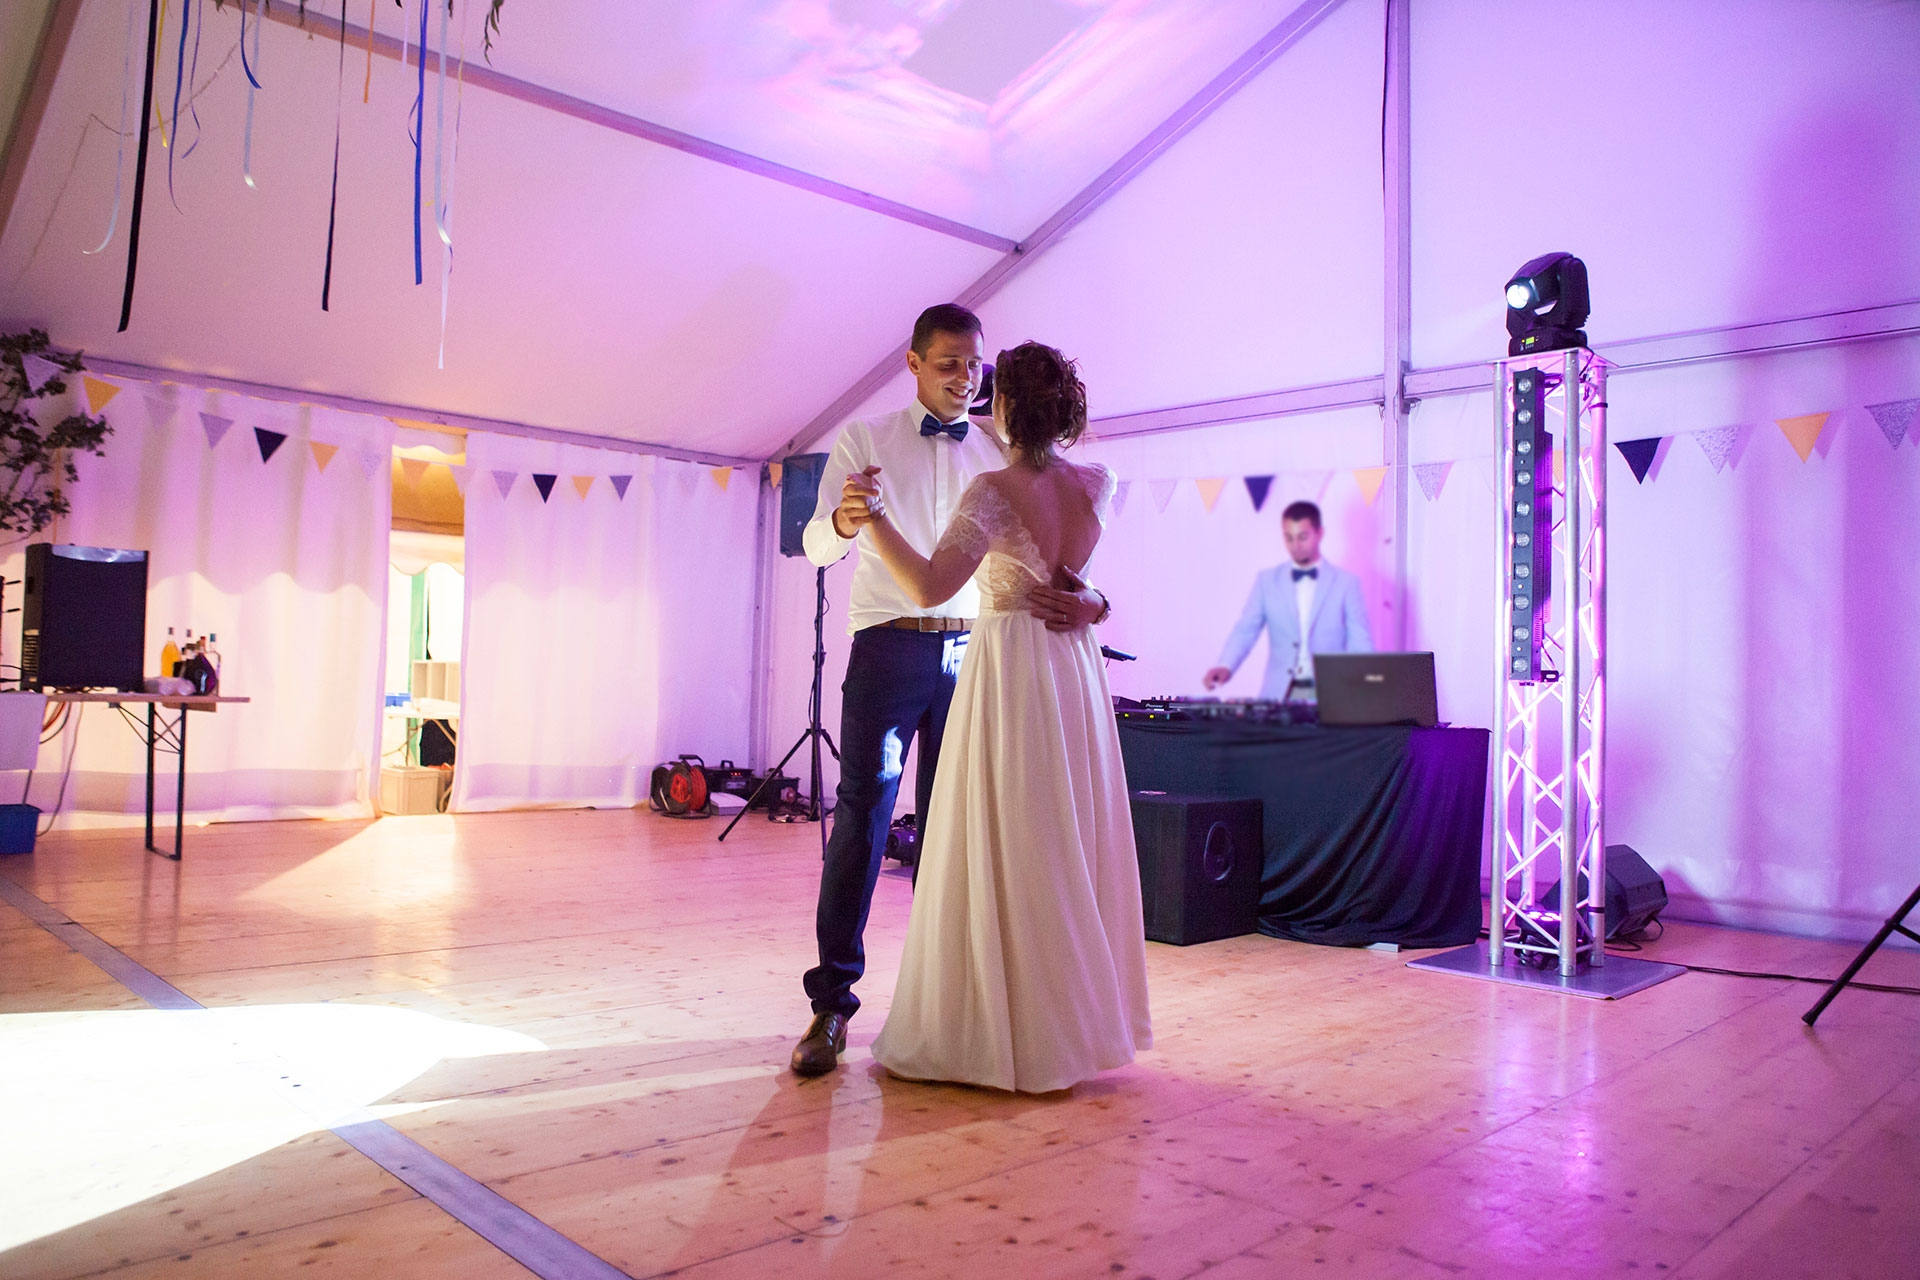 particuliers-evenements-mariages-oui-clementine&alexandre-75